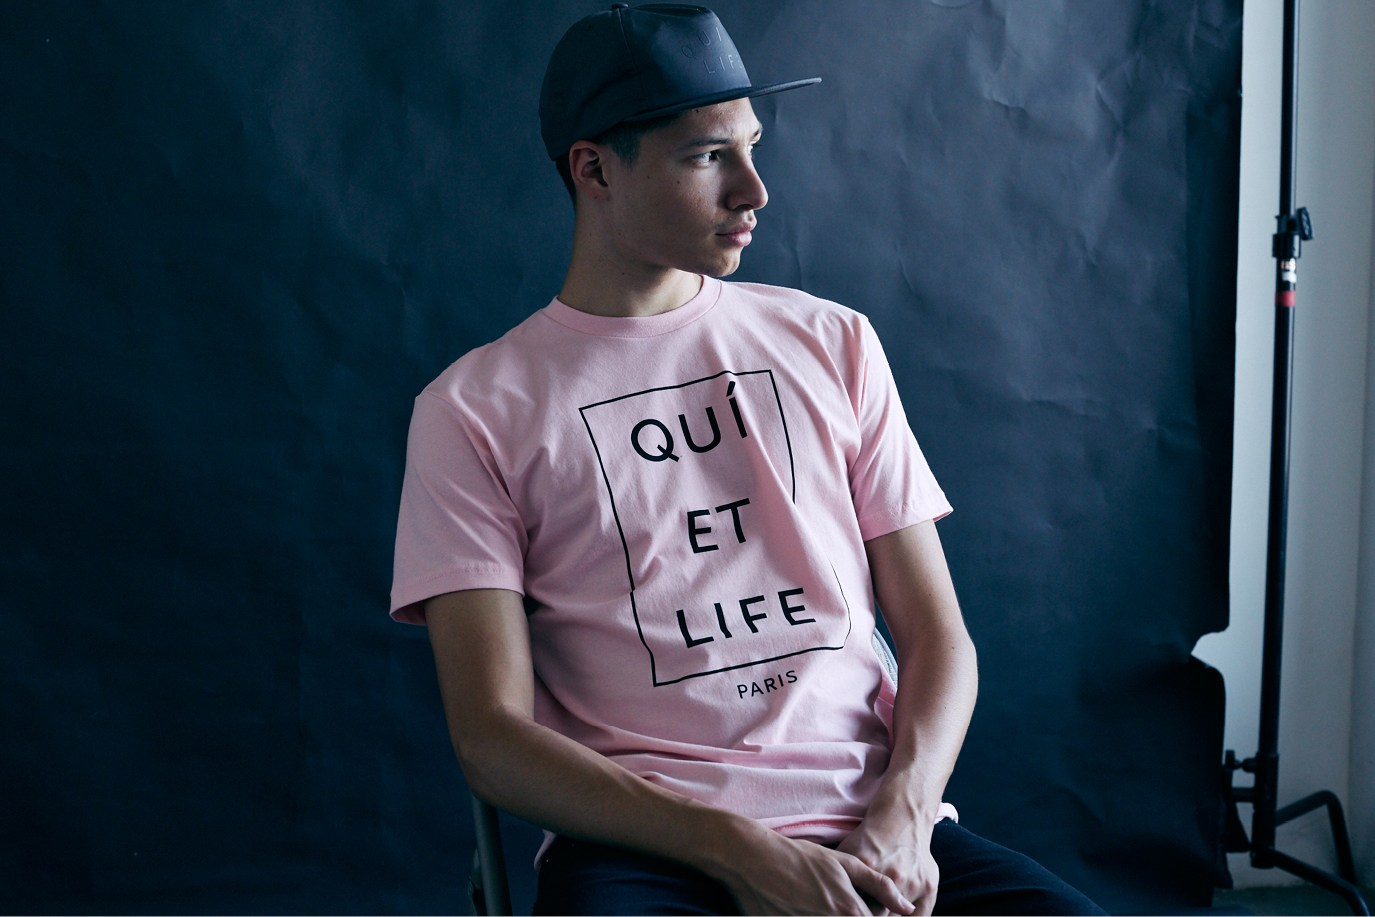 the-quiet-life-2016-spring-drop-2-lookbook-22.jpg